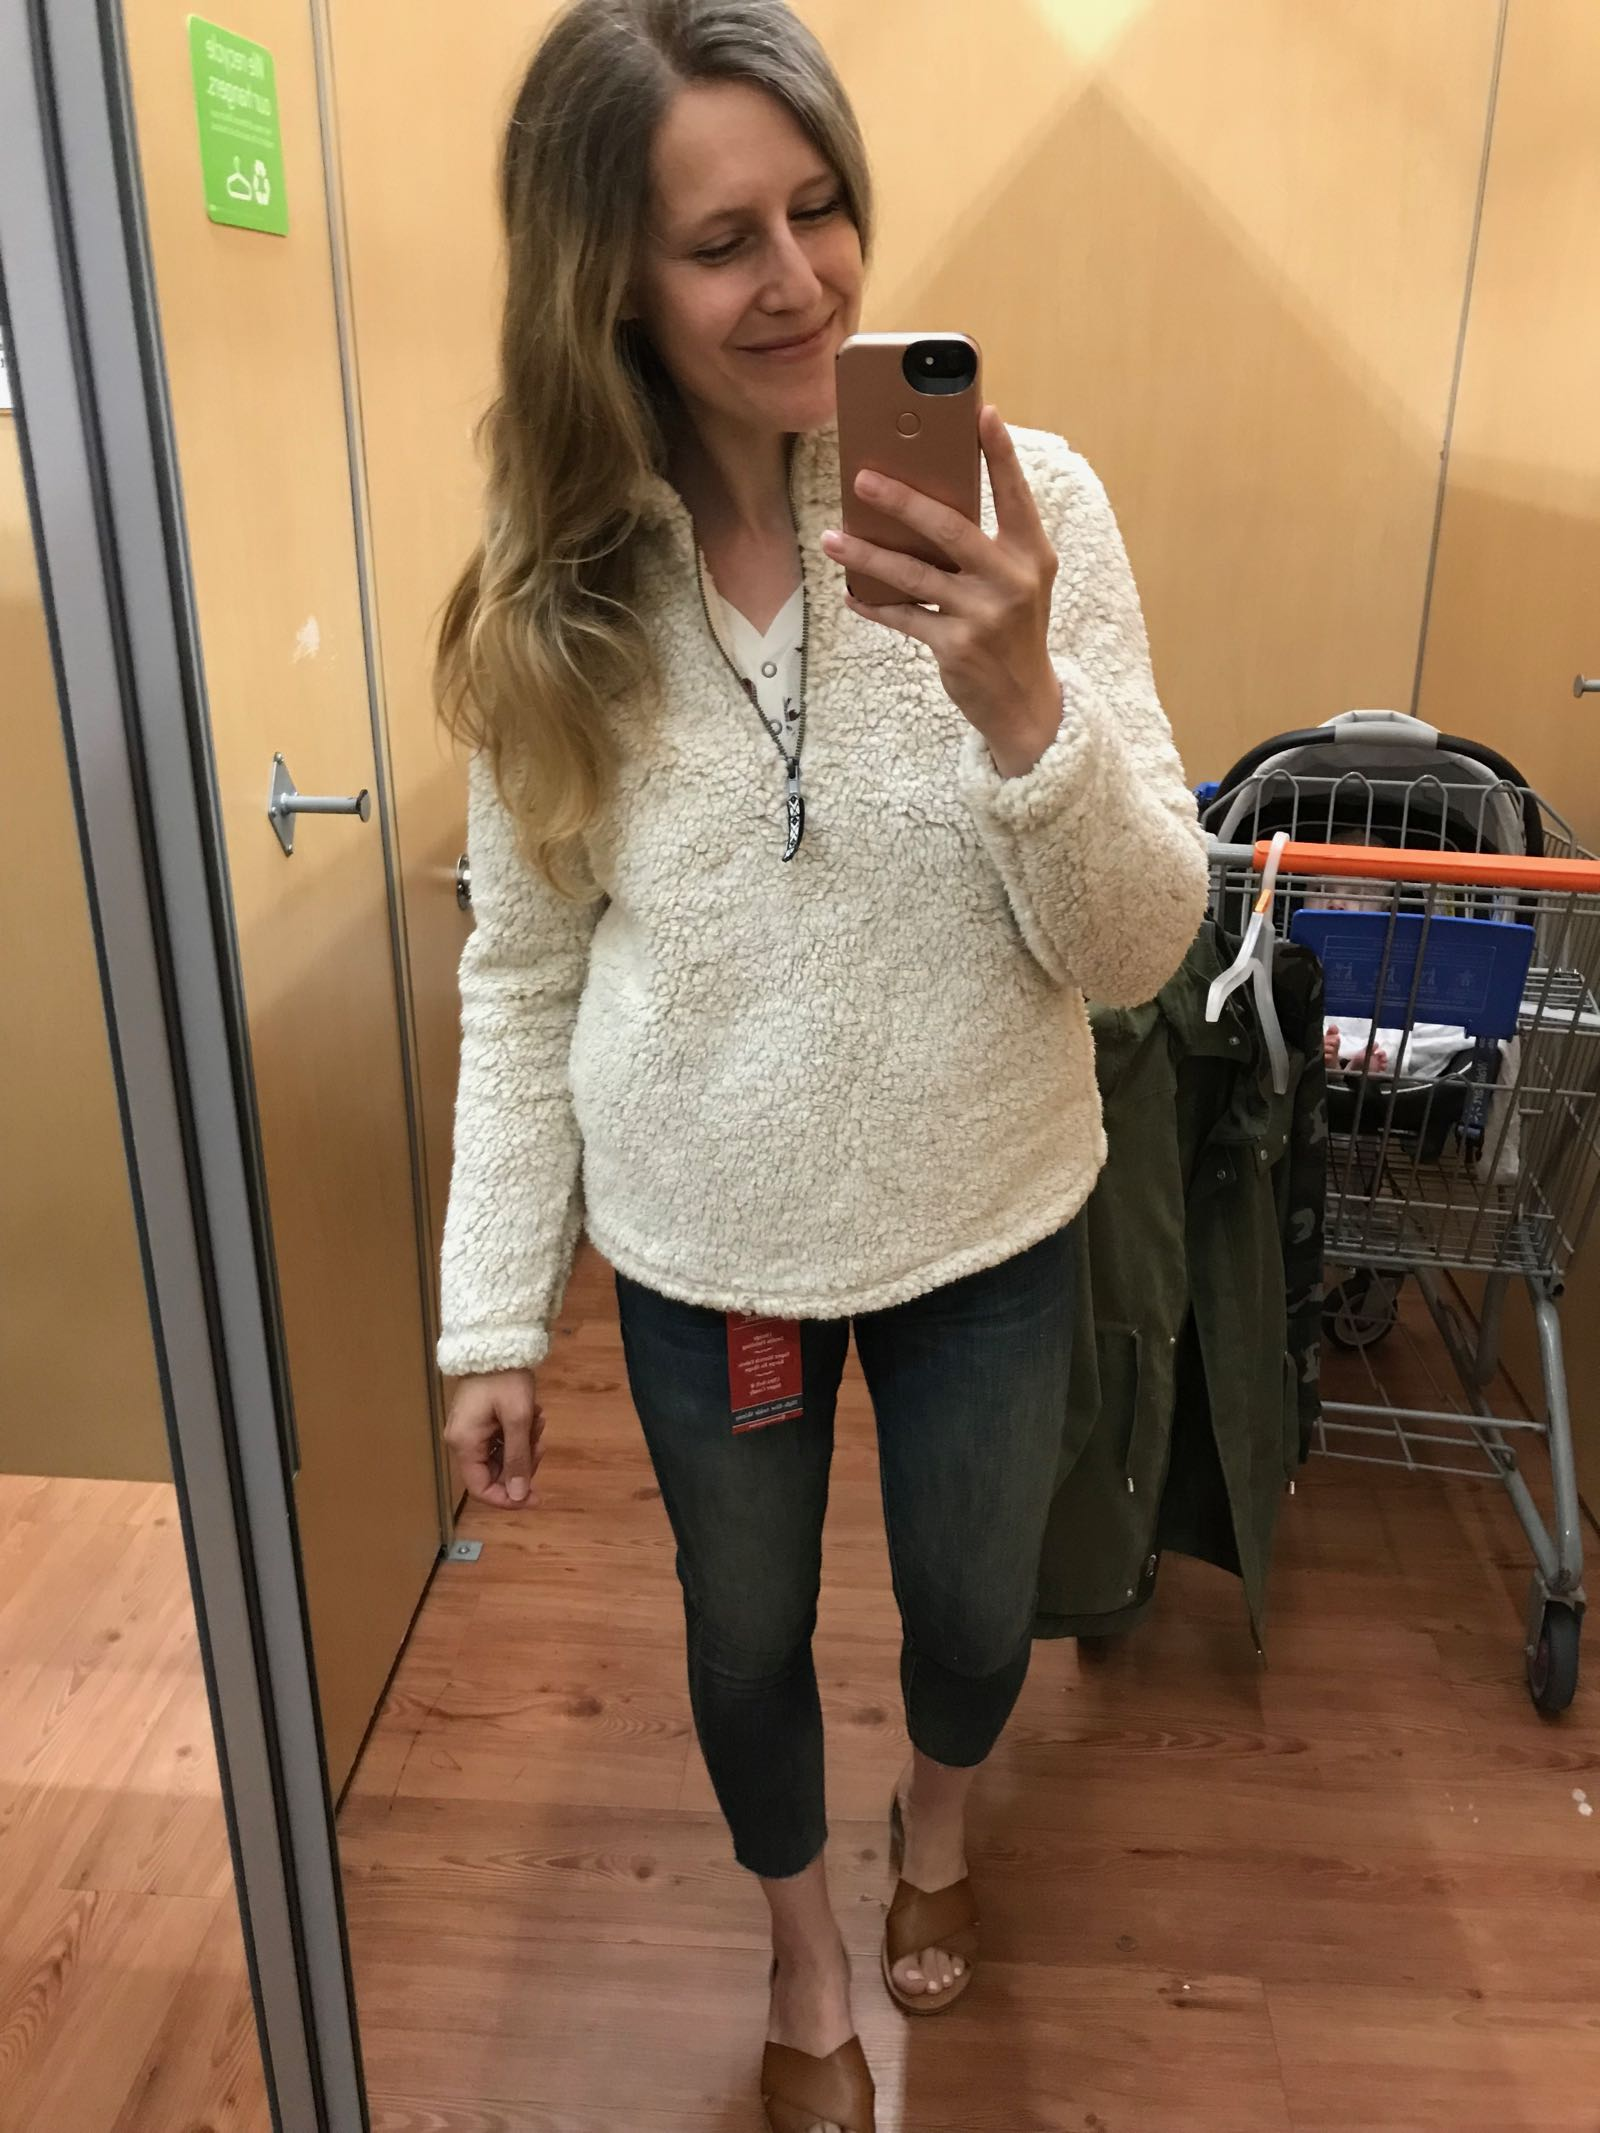 The coziest sherpa fleece pullover! Just $19.96 at Walmart! Looks like one at Nordstrom for $78